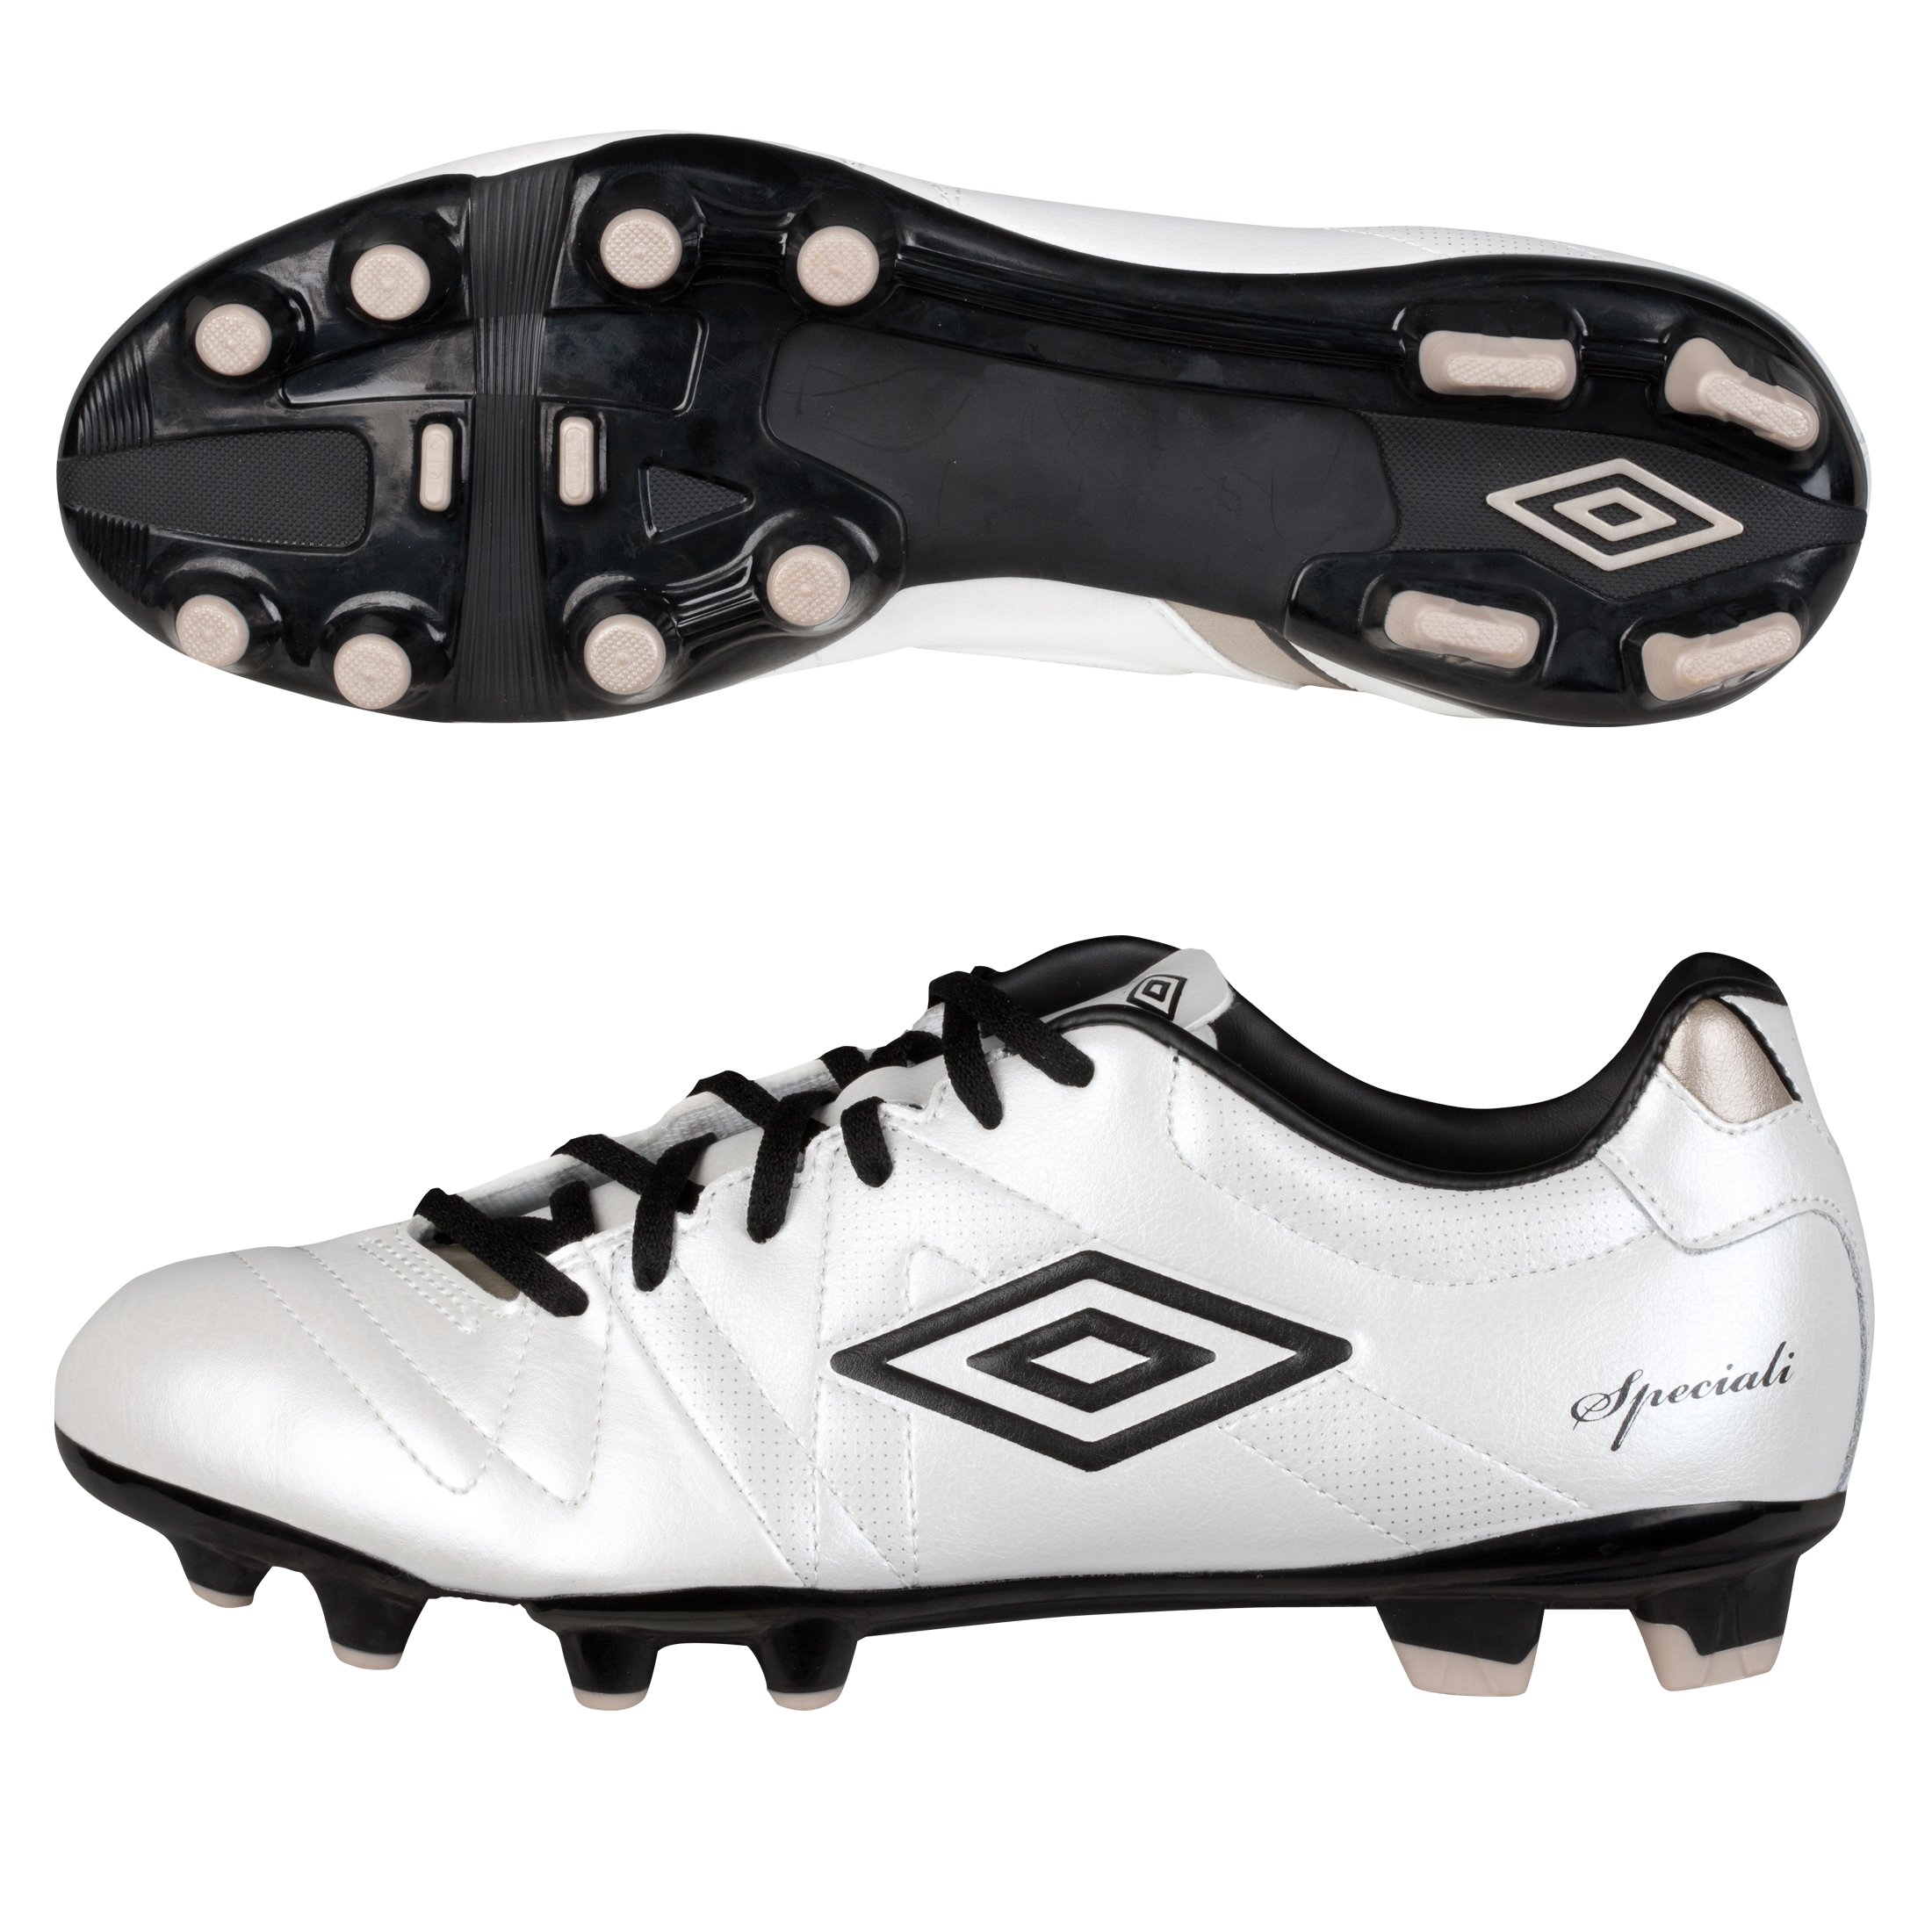 Umbro Speciali 3 Cup Hard Ground Football Boots - Pearlised White/Black/Pewter